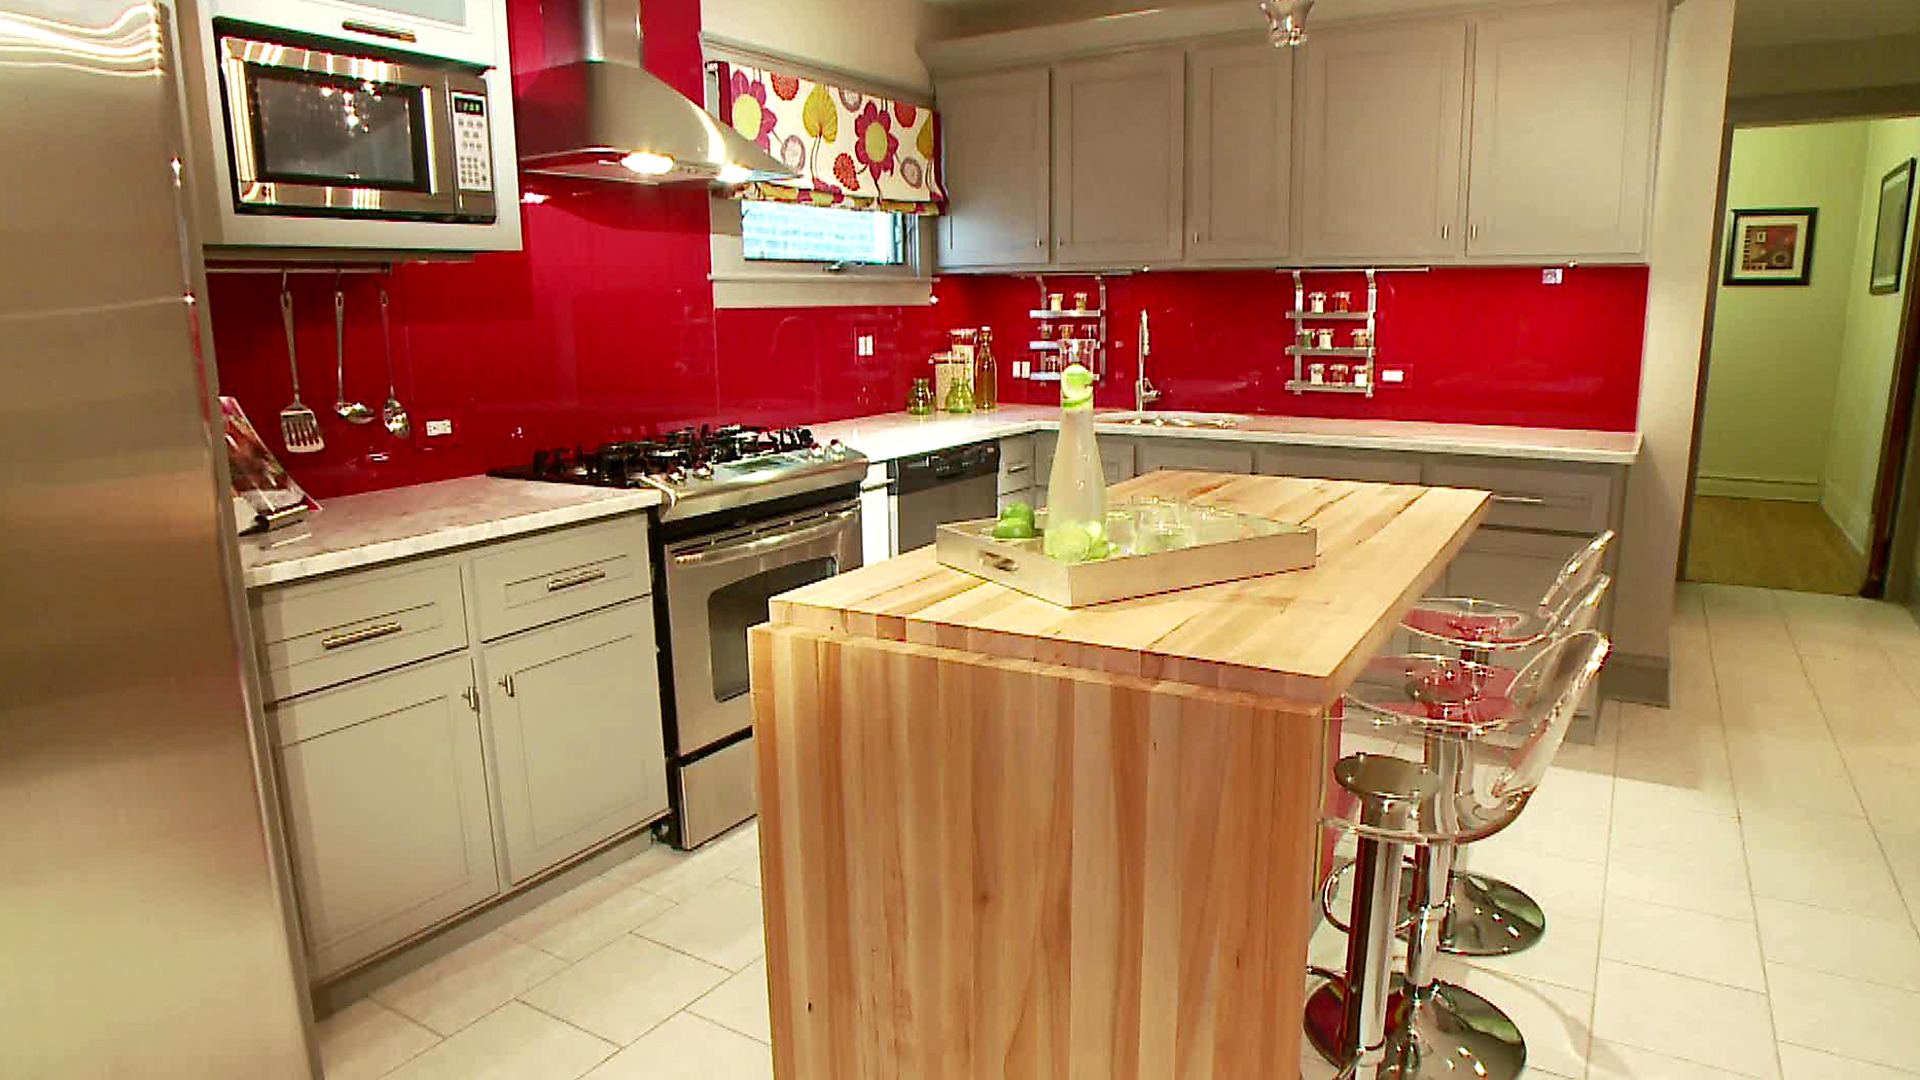 Stylish kitchen colors best colors to paint a kitchen: pictures u0026 ideas from hgtv | hgtv xyszpfh